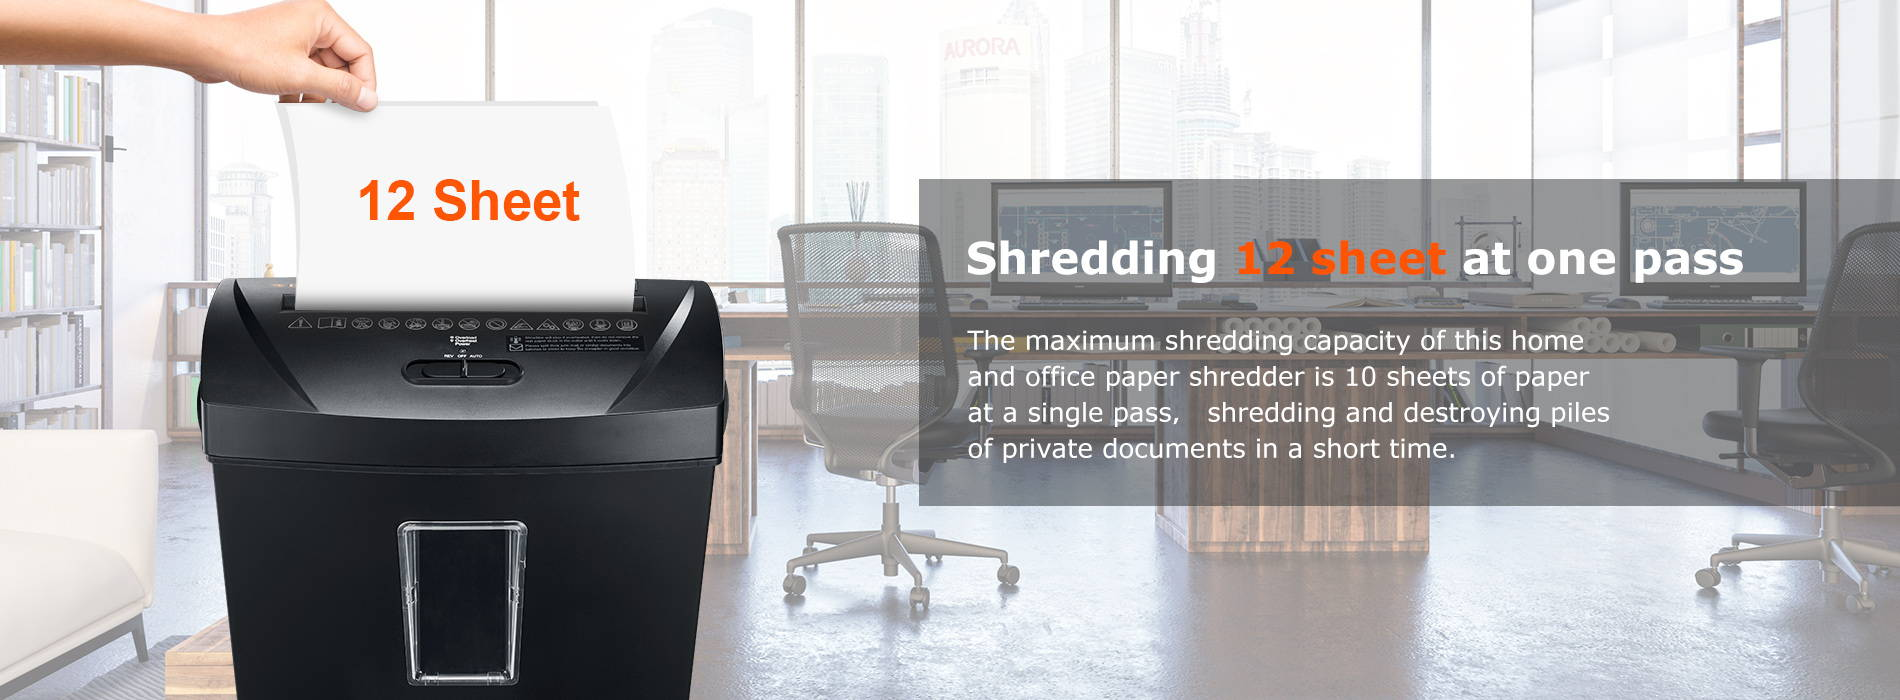 Shredding 12 sheet at one pass The maximum shredding capacity of this home and office paper shredder is 10 sheets of paper at a single pass, shredding and destroying piles of private documents in a short time.